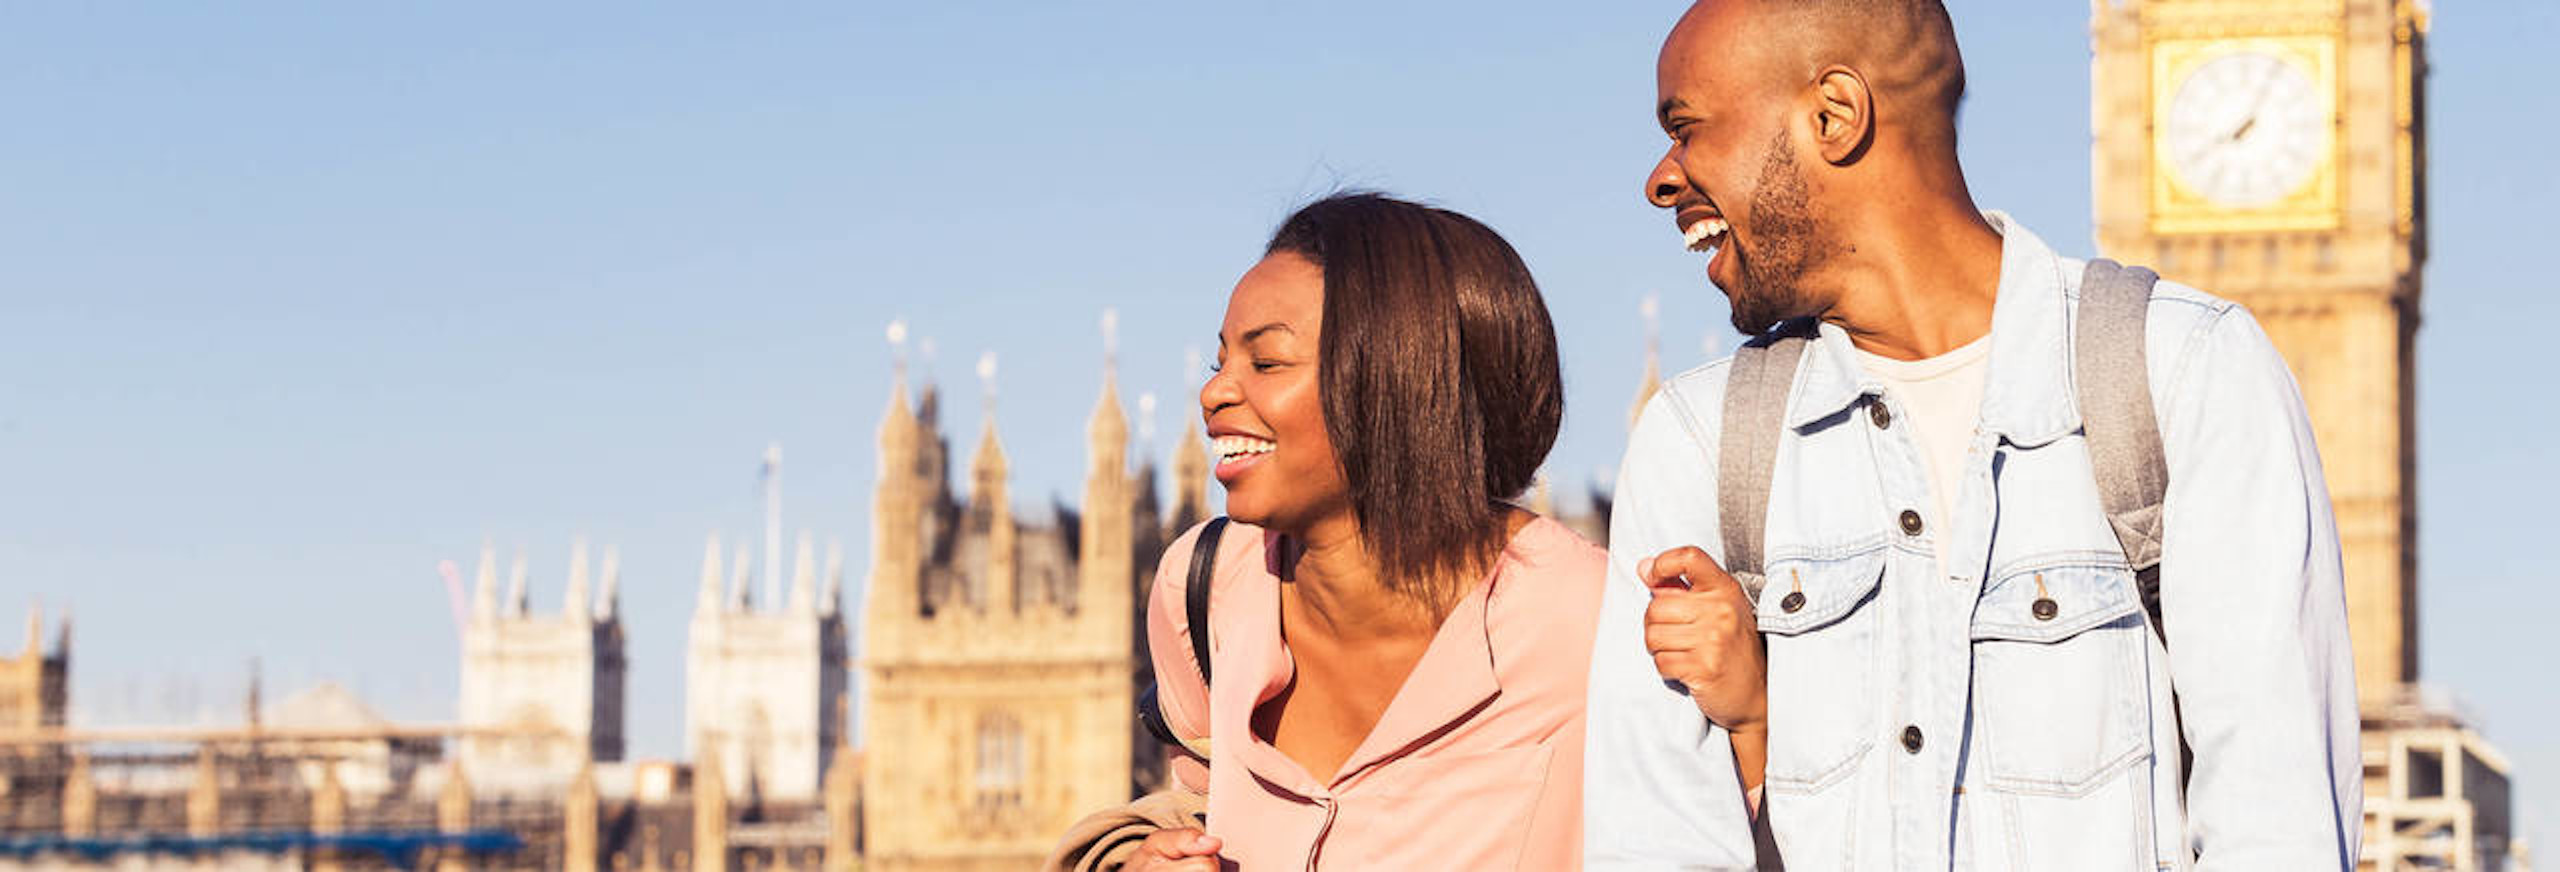 Couple walking by London Big Ben